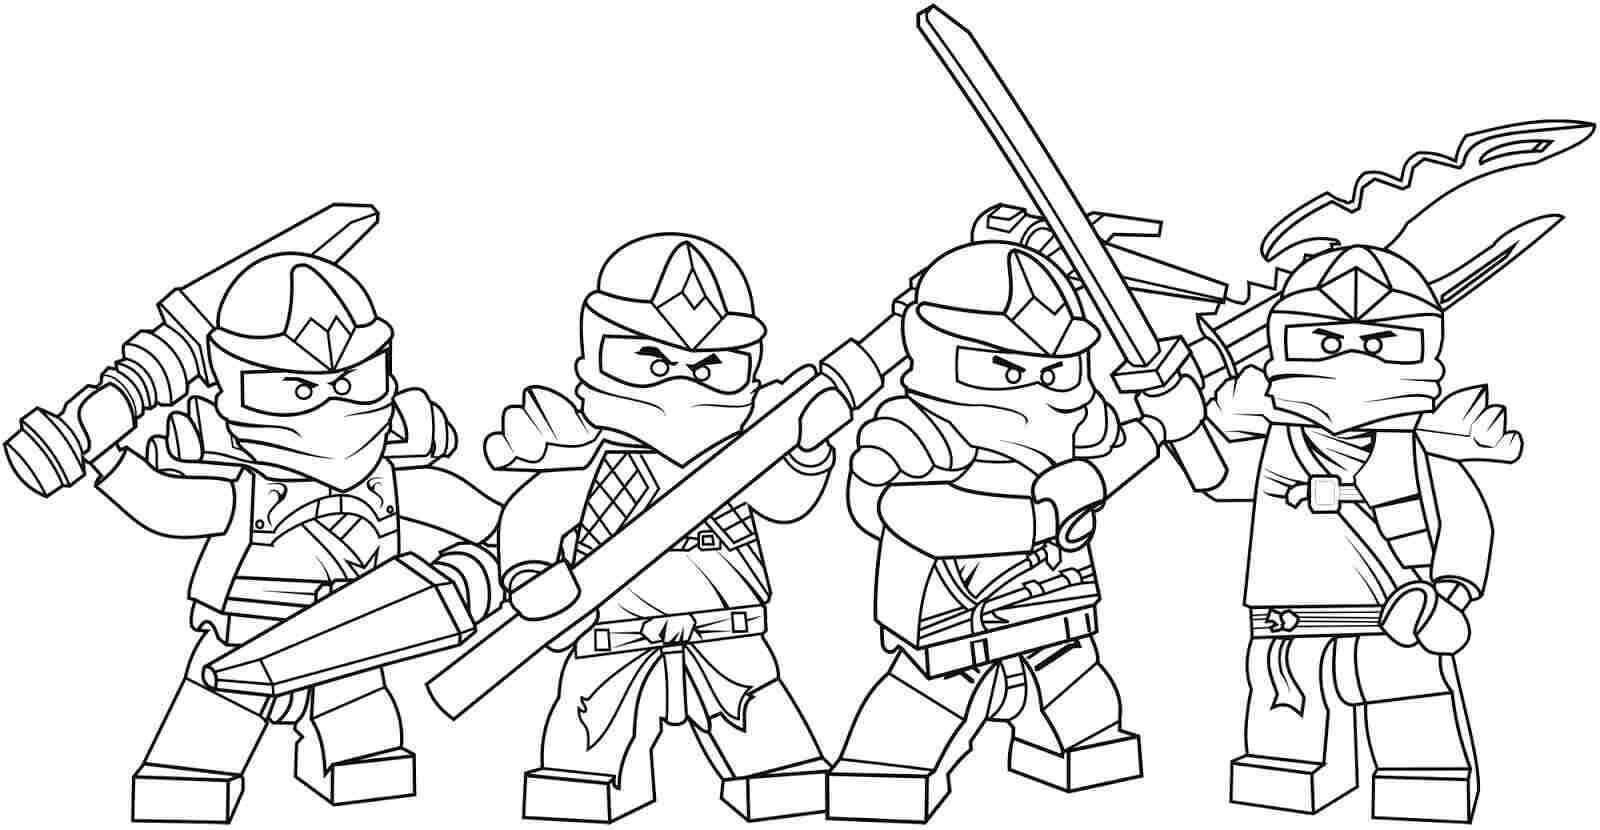 30 free printable lego ninjago coloring pages for Lego coloring pages to print free